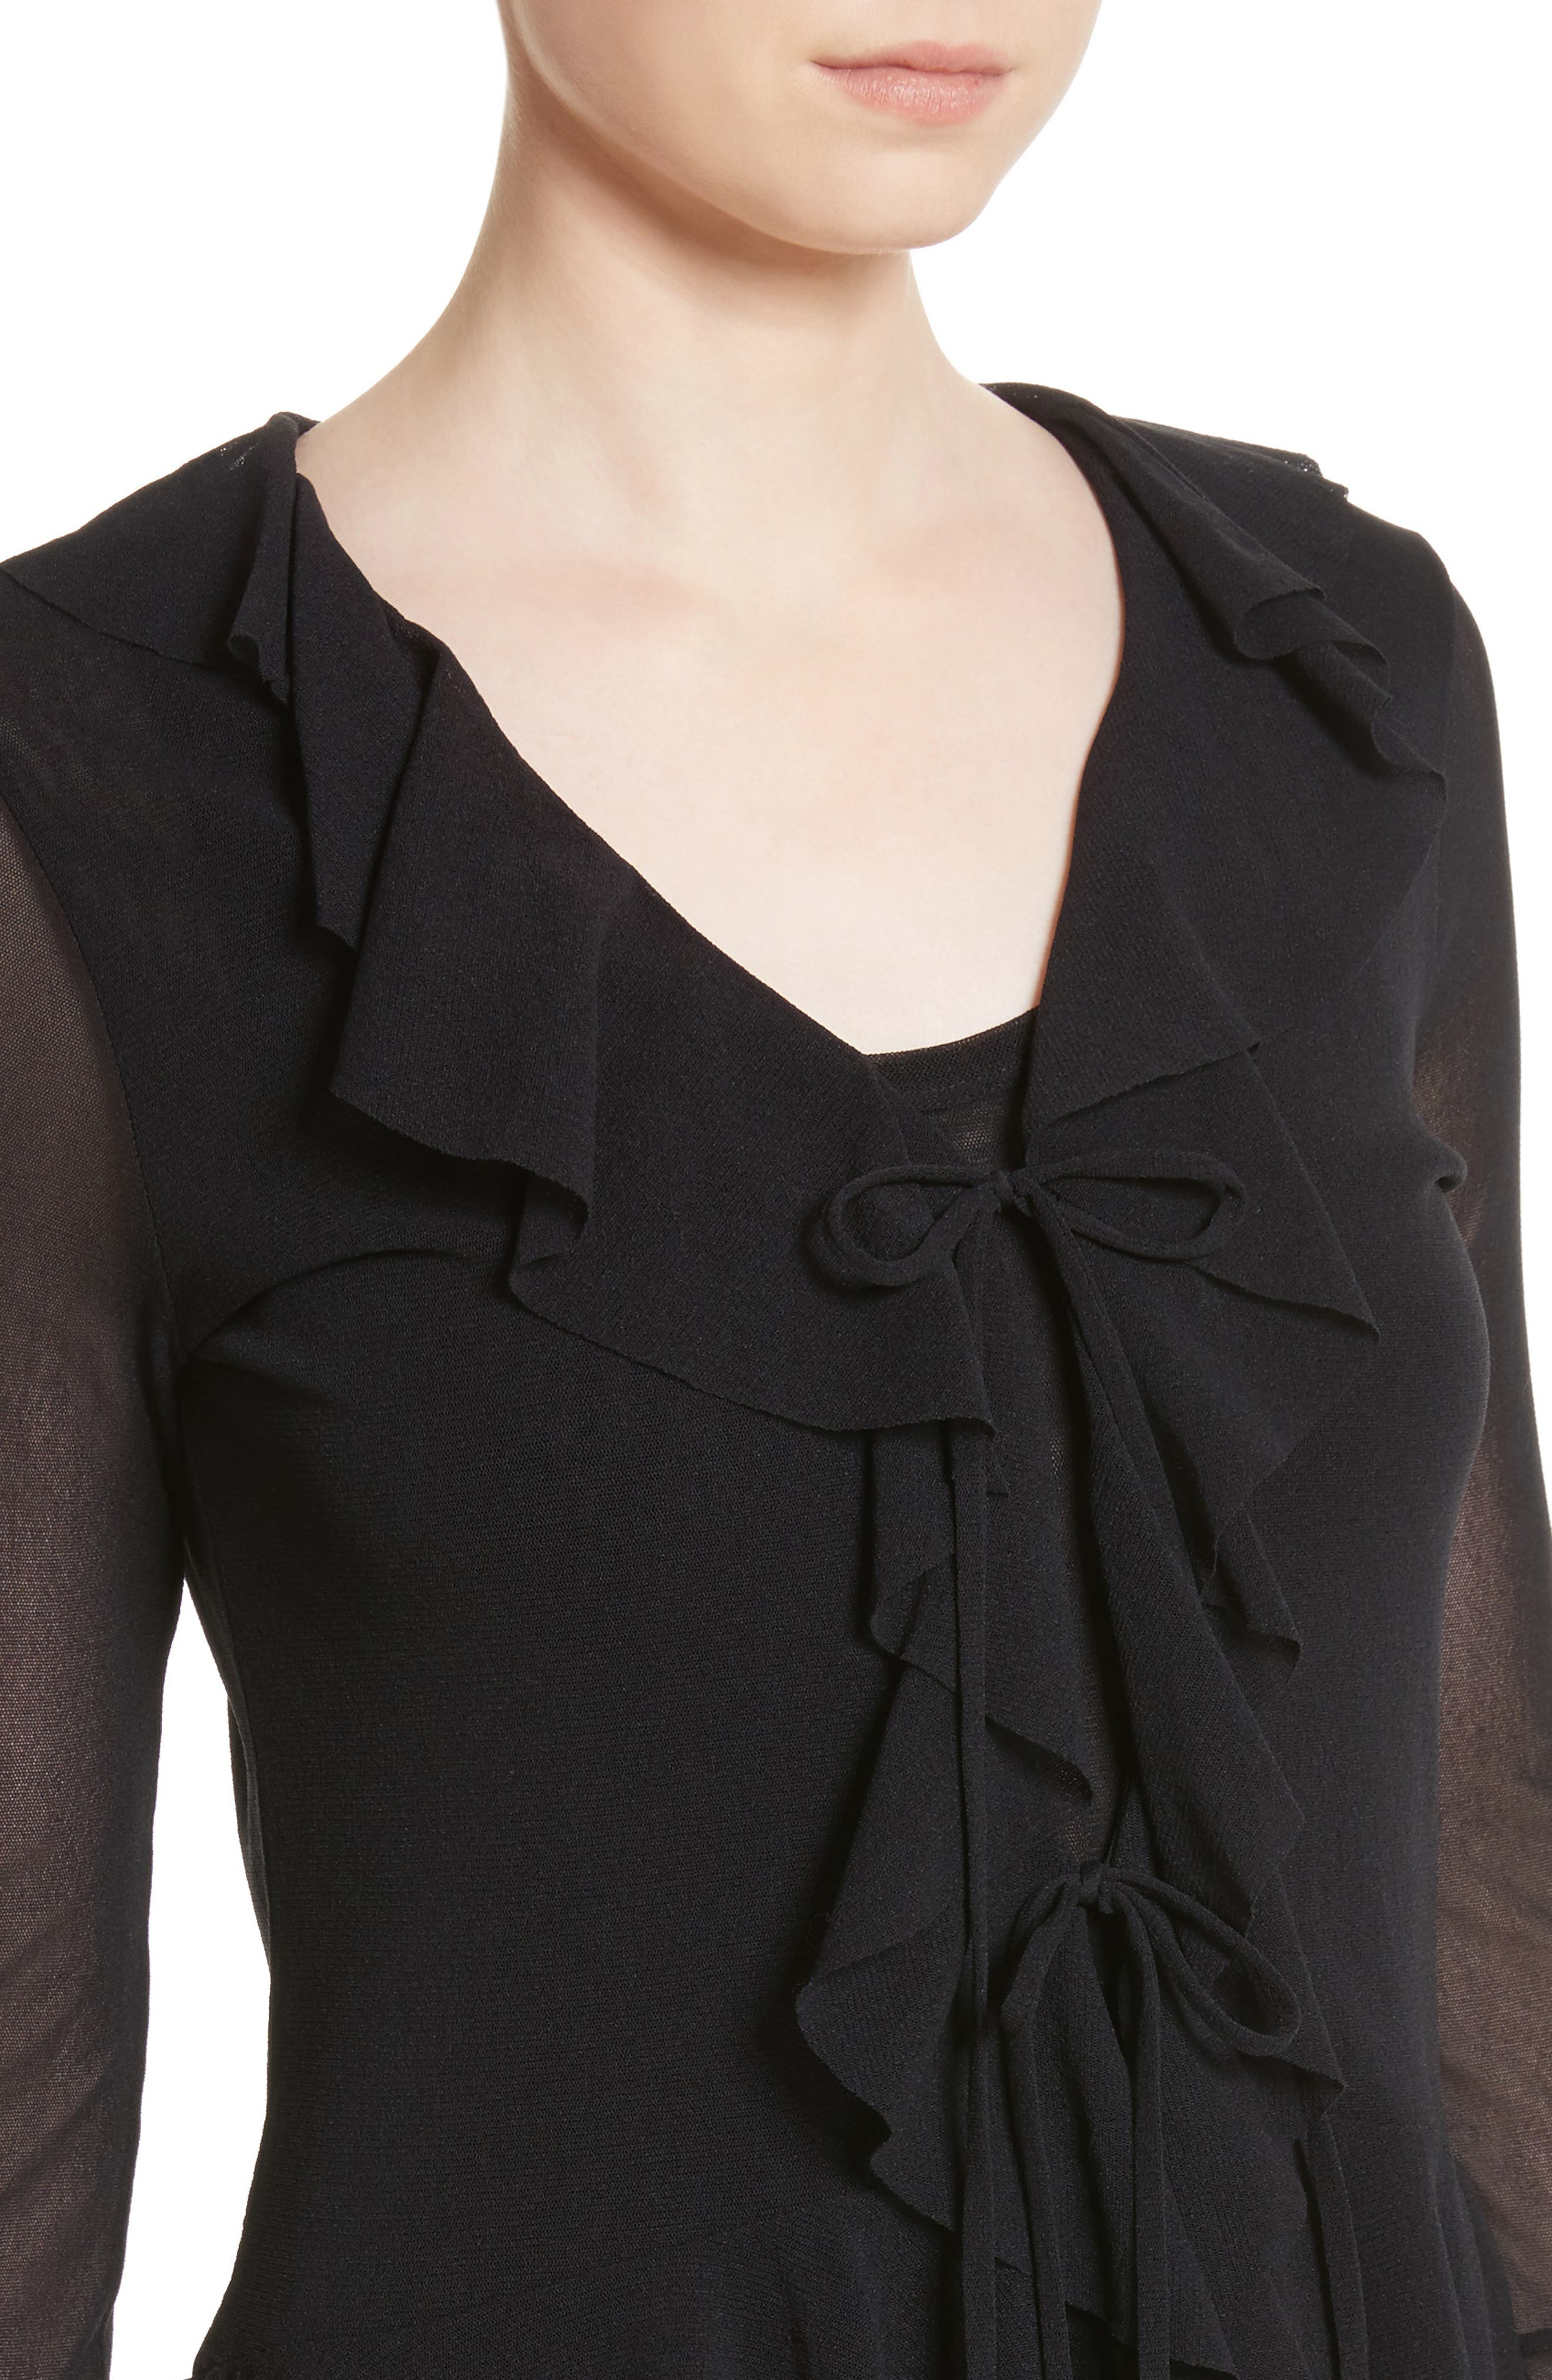 Ruffle Tulle Tie Front Cardigan,                             Alternate thumbnail 4, color,                             001